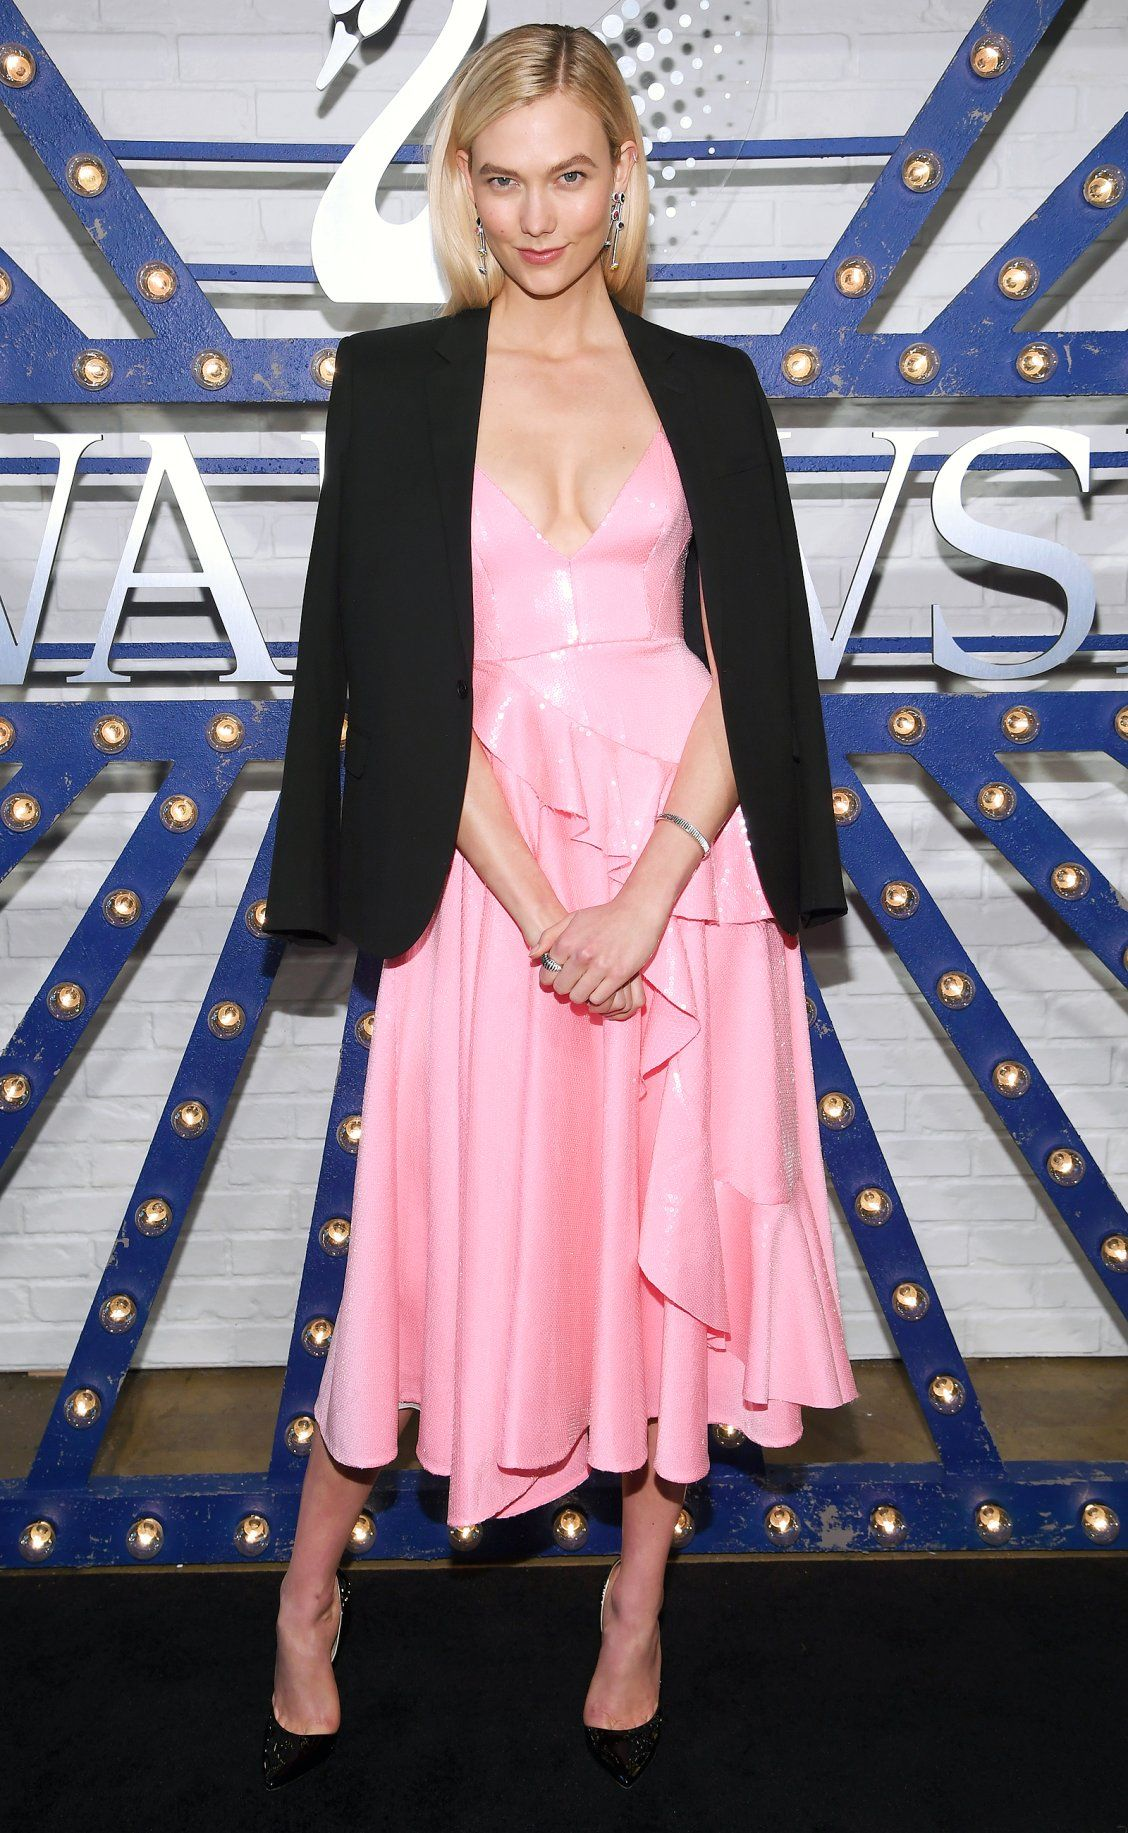 304f8ae29bc Karlie Kloss  Feminine Baby Pink Dress - and More Celebrity Outfits ...